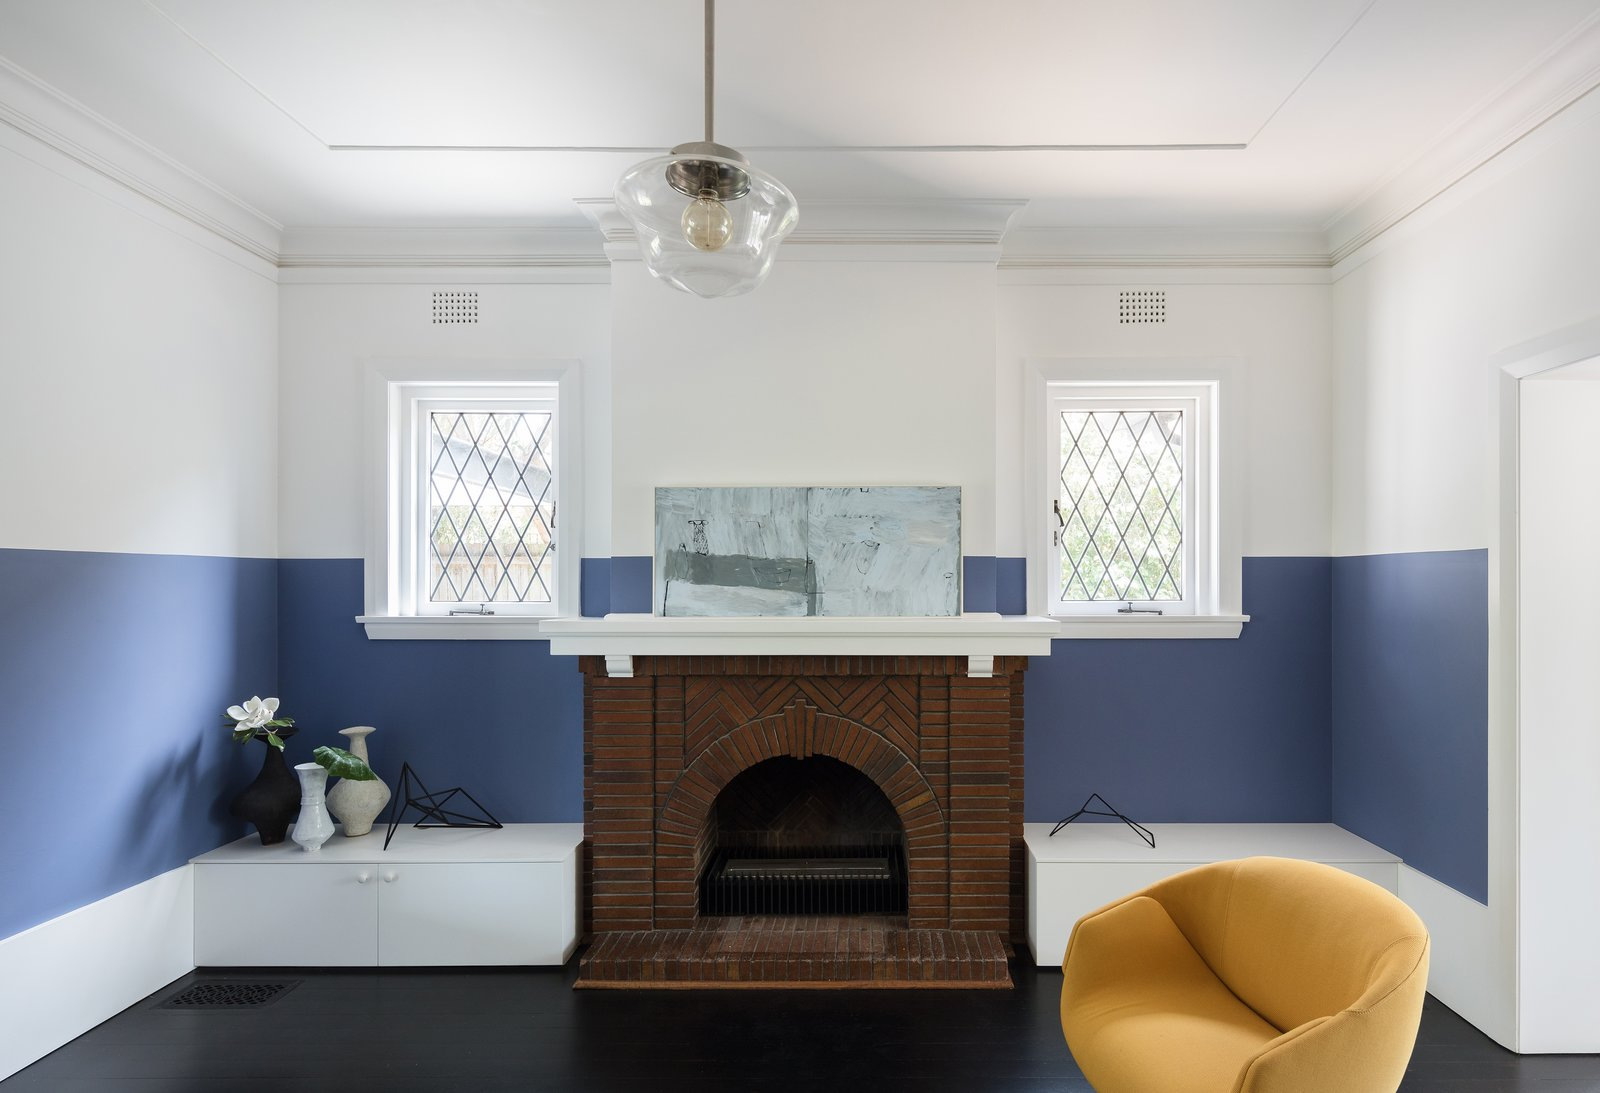 Tagged: Living Room, Pendant Lighting, Chair, and Standard Layout Fireplace. This 1930s Bungalow in Sydney Was Preserved in the Front and Updated in the Back - Photo 5 of 13